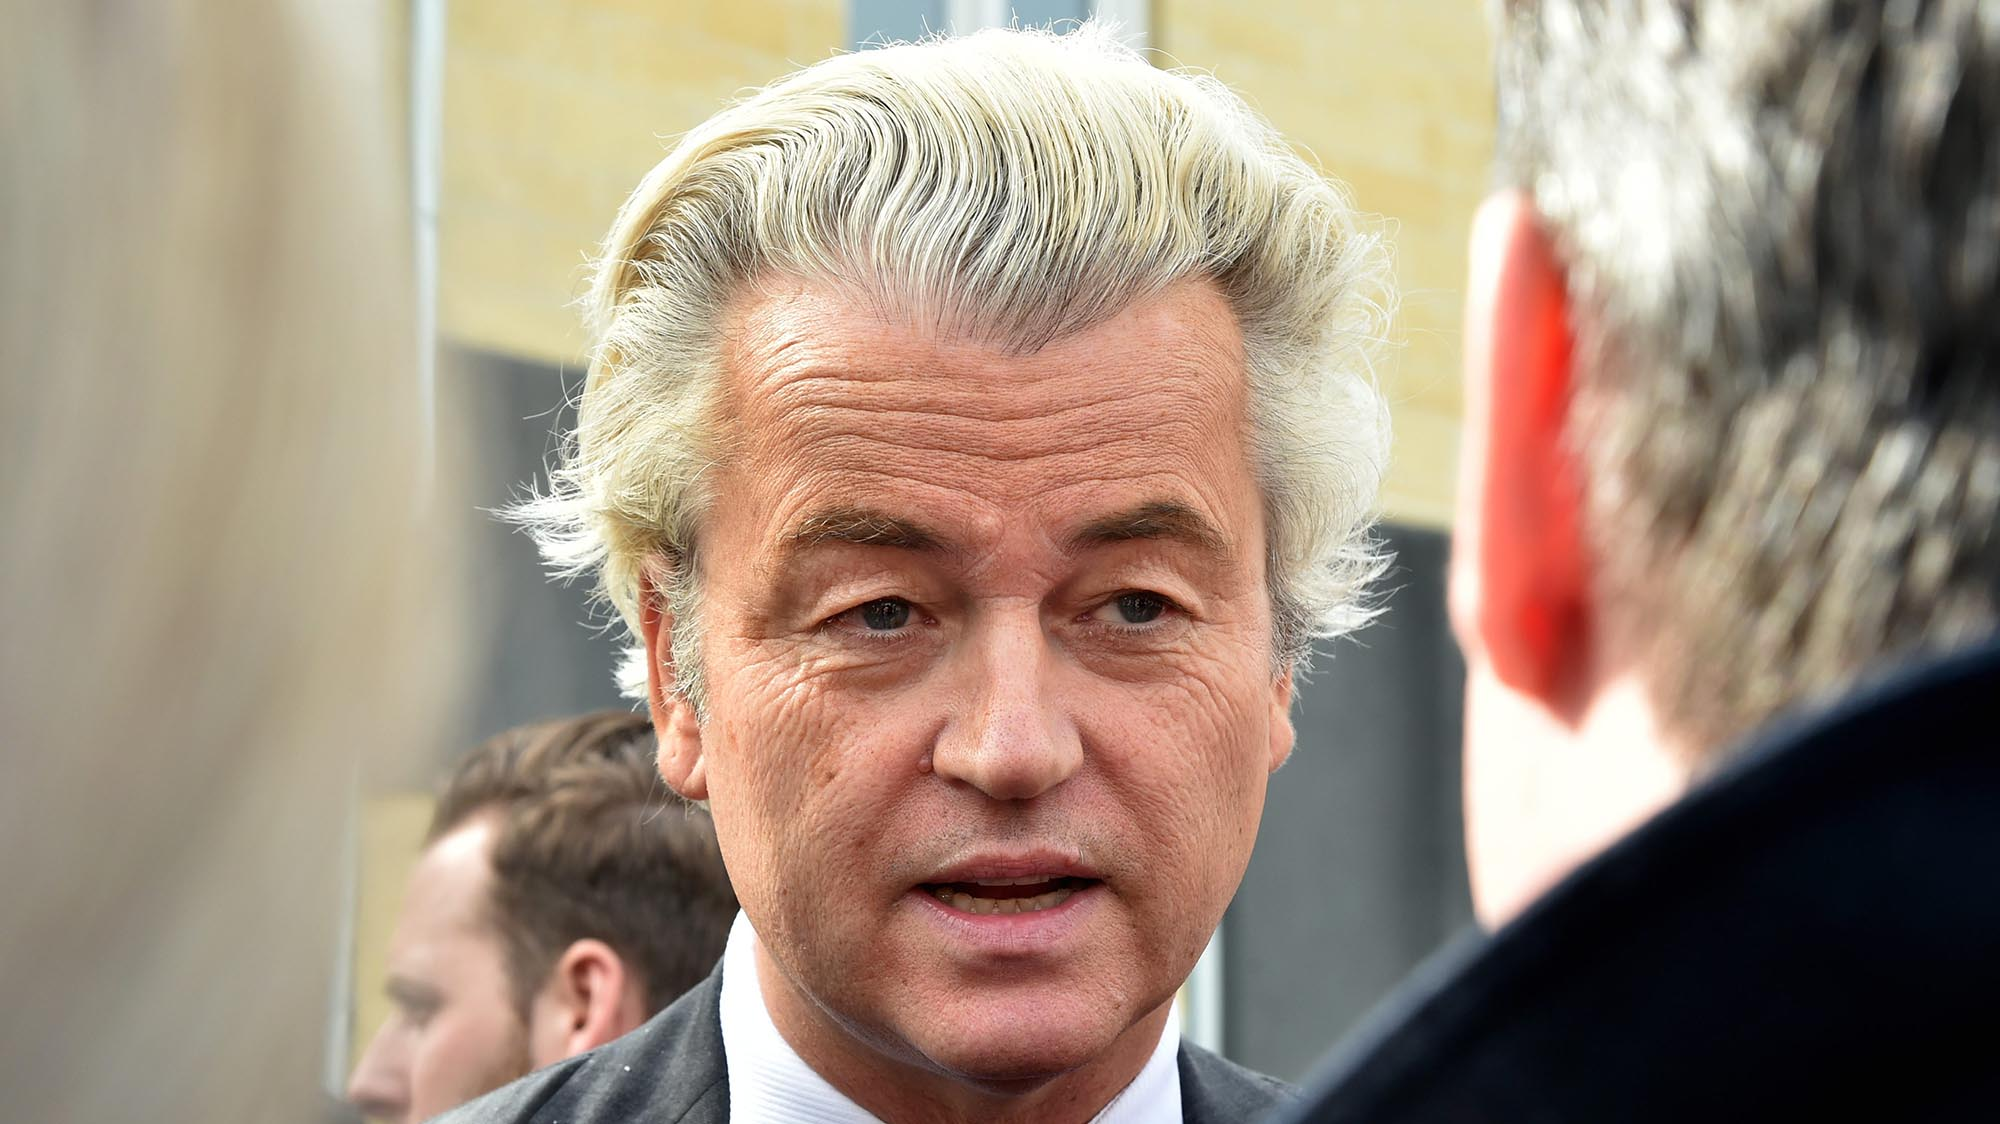 Here's Why You Should Care About the Dutch Election